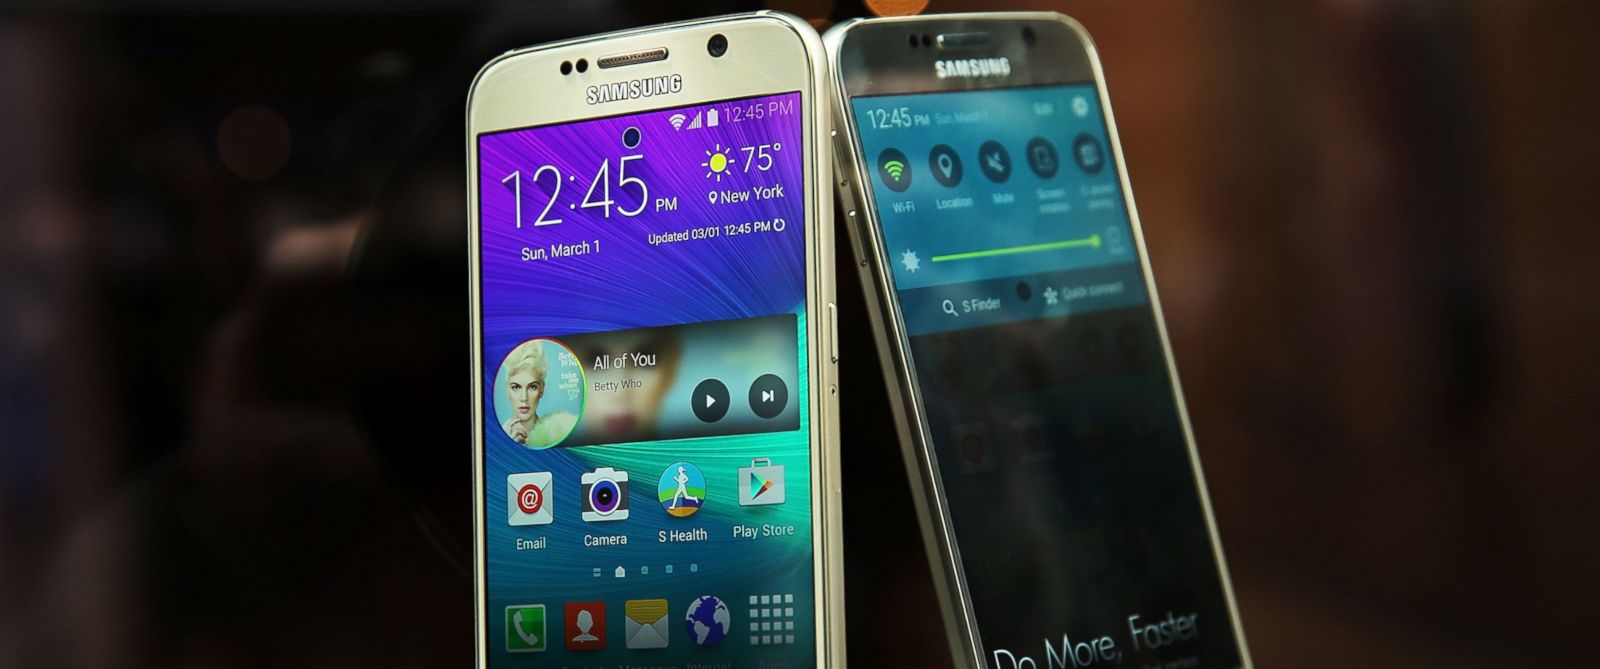 PHOTO: Samsungs latest flagship smartphones, the Galaxy S6 and the S6 Edge, are viewed in the window of a Samsung store on the day of their release in this April 10, 2015 file photo in New York.